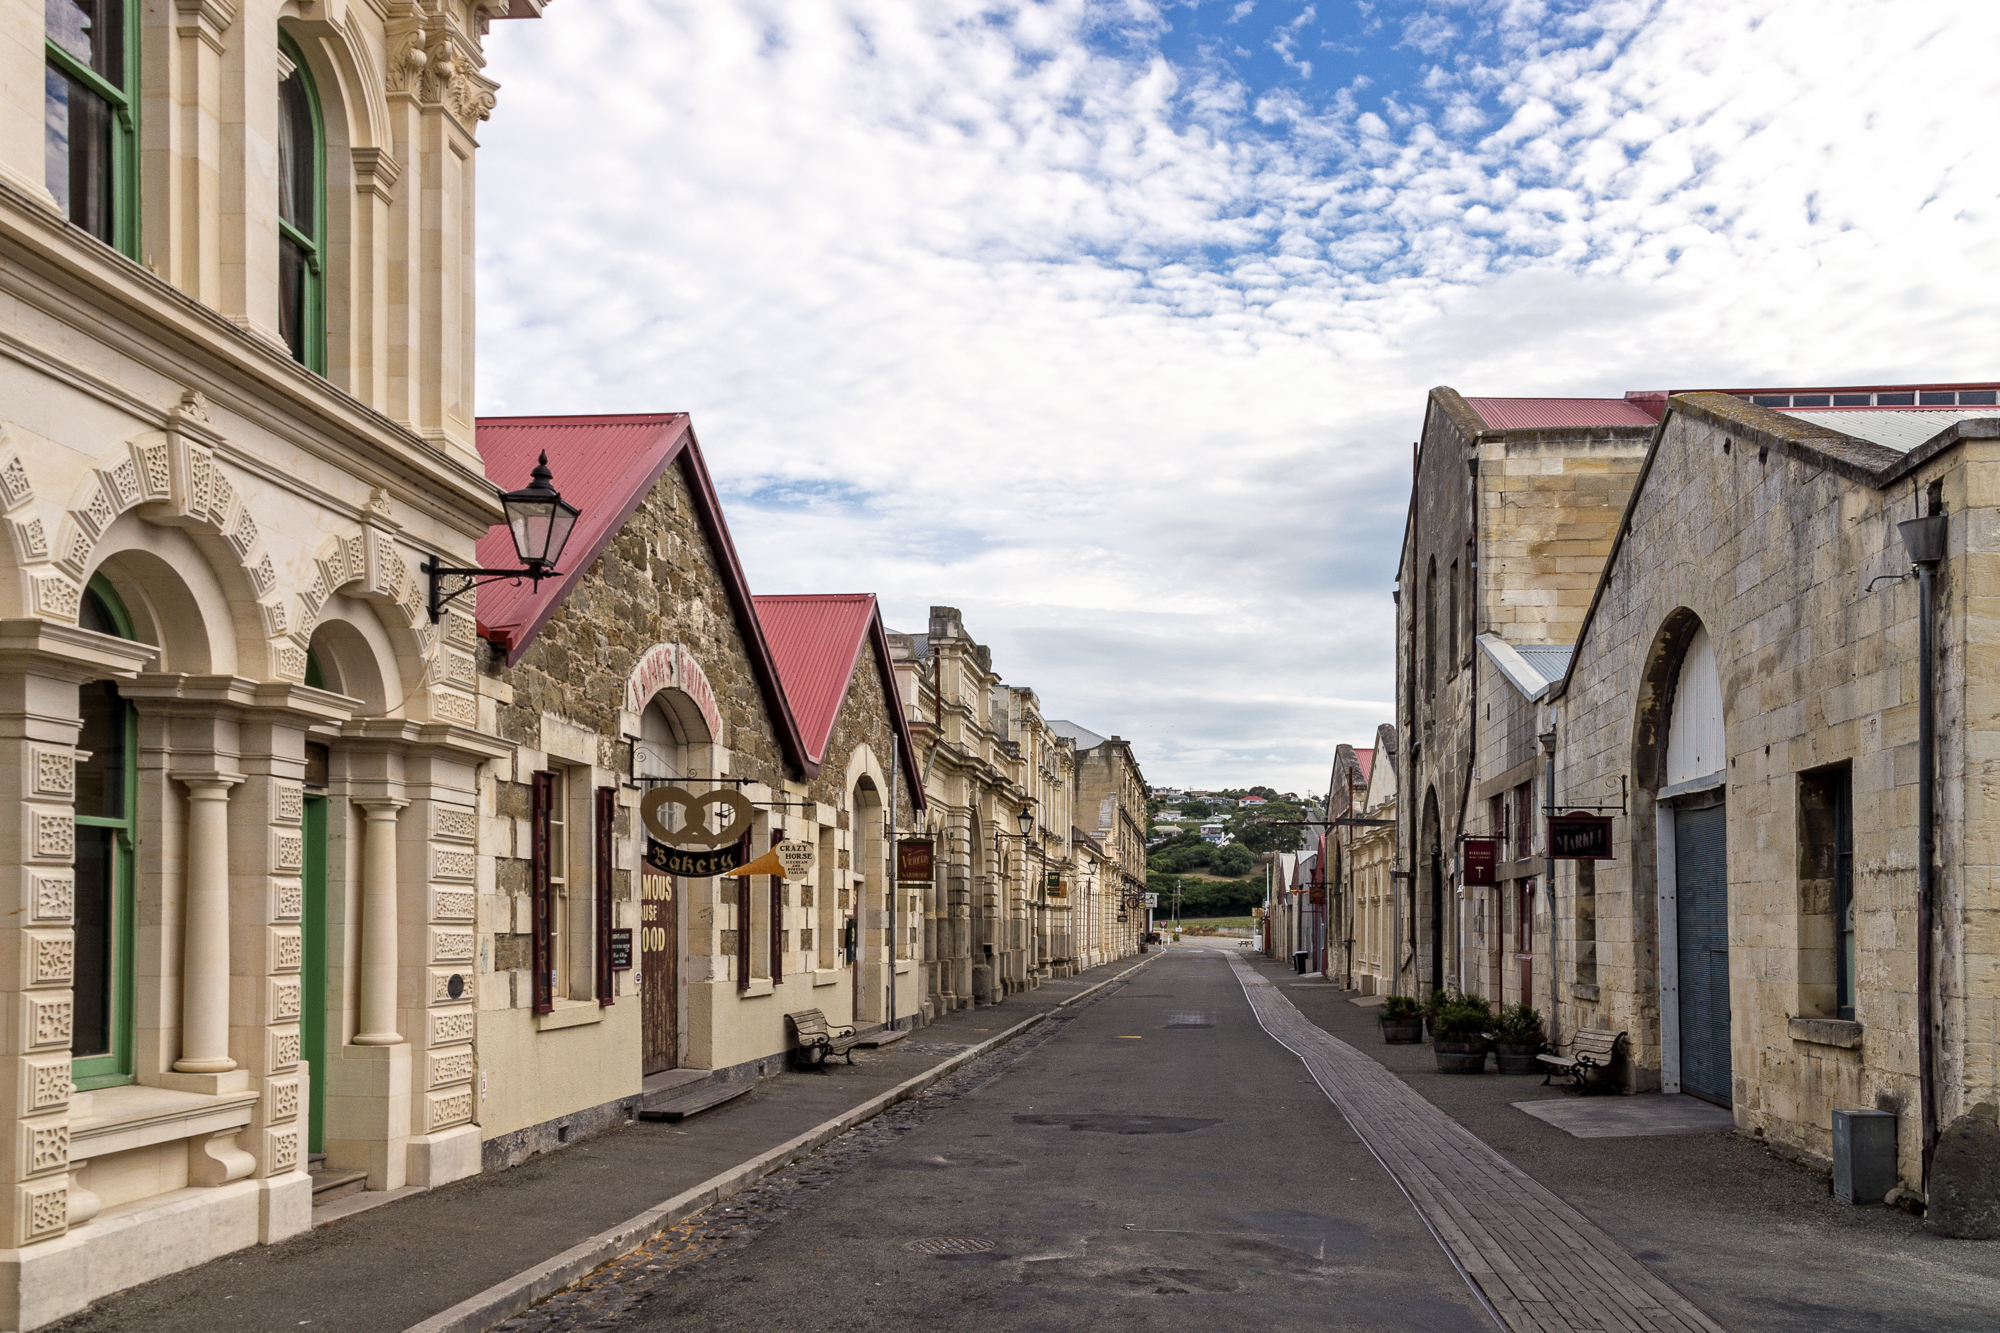 Oamaru New Zealand  City pictures : Harbour Street, Oamaru, New Zealand, Copyright Chris Gregory 2013